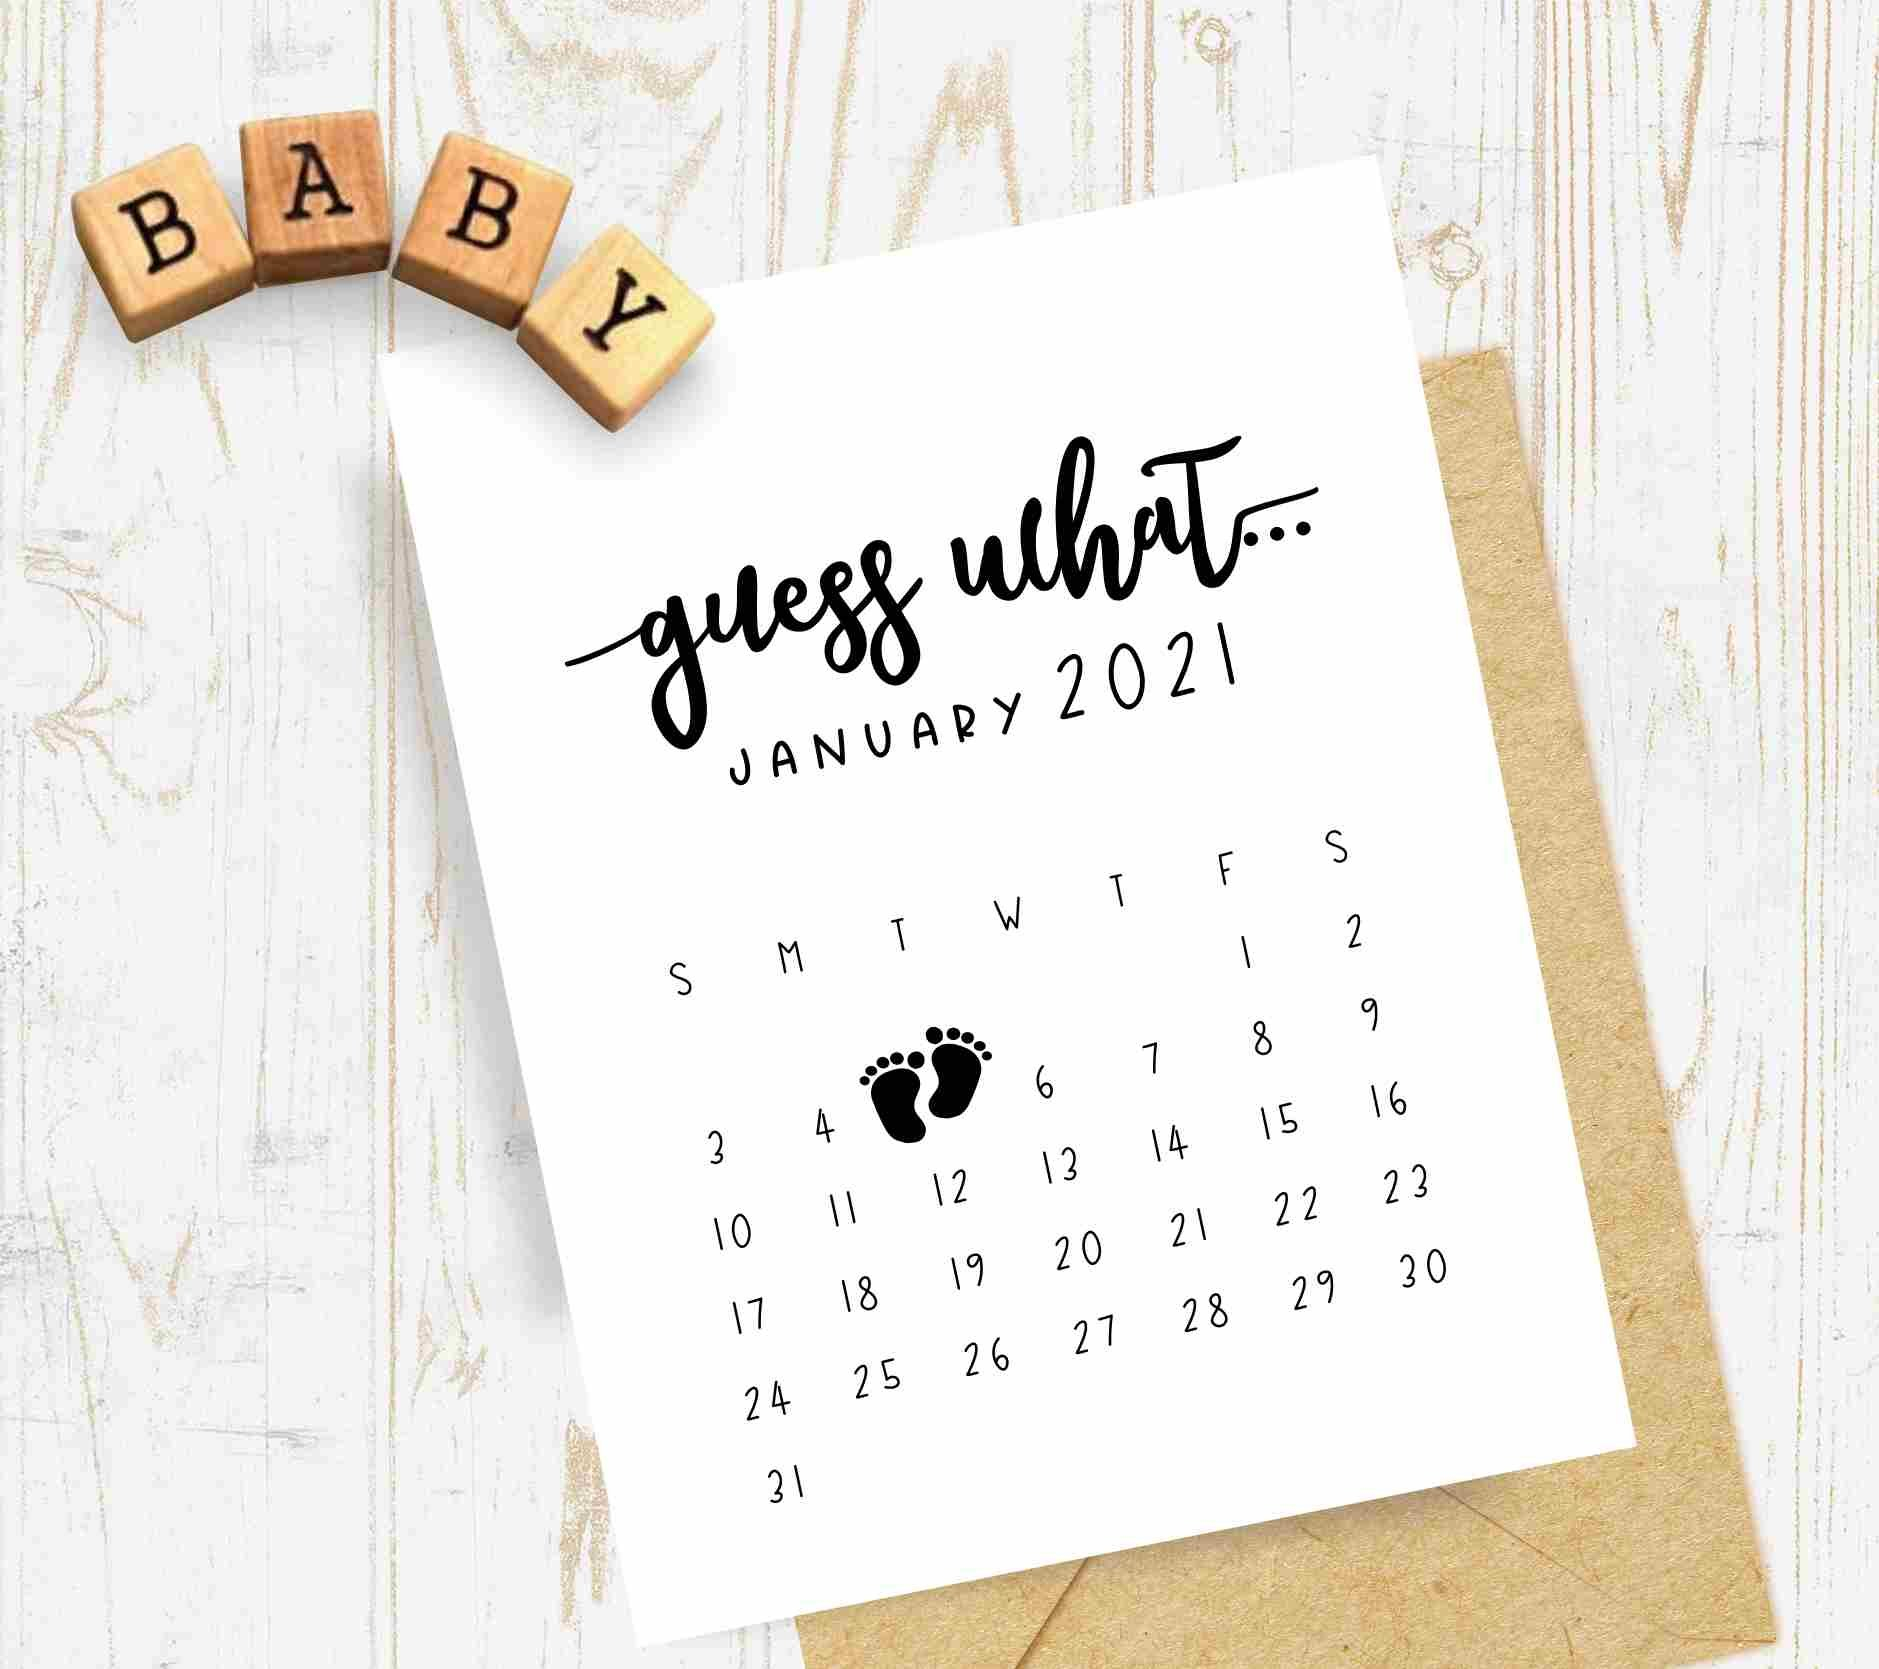 Pregnancy Announcement Calendar – Personalized Guess What Calendar Guess The Due Date Printable Calendar